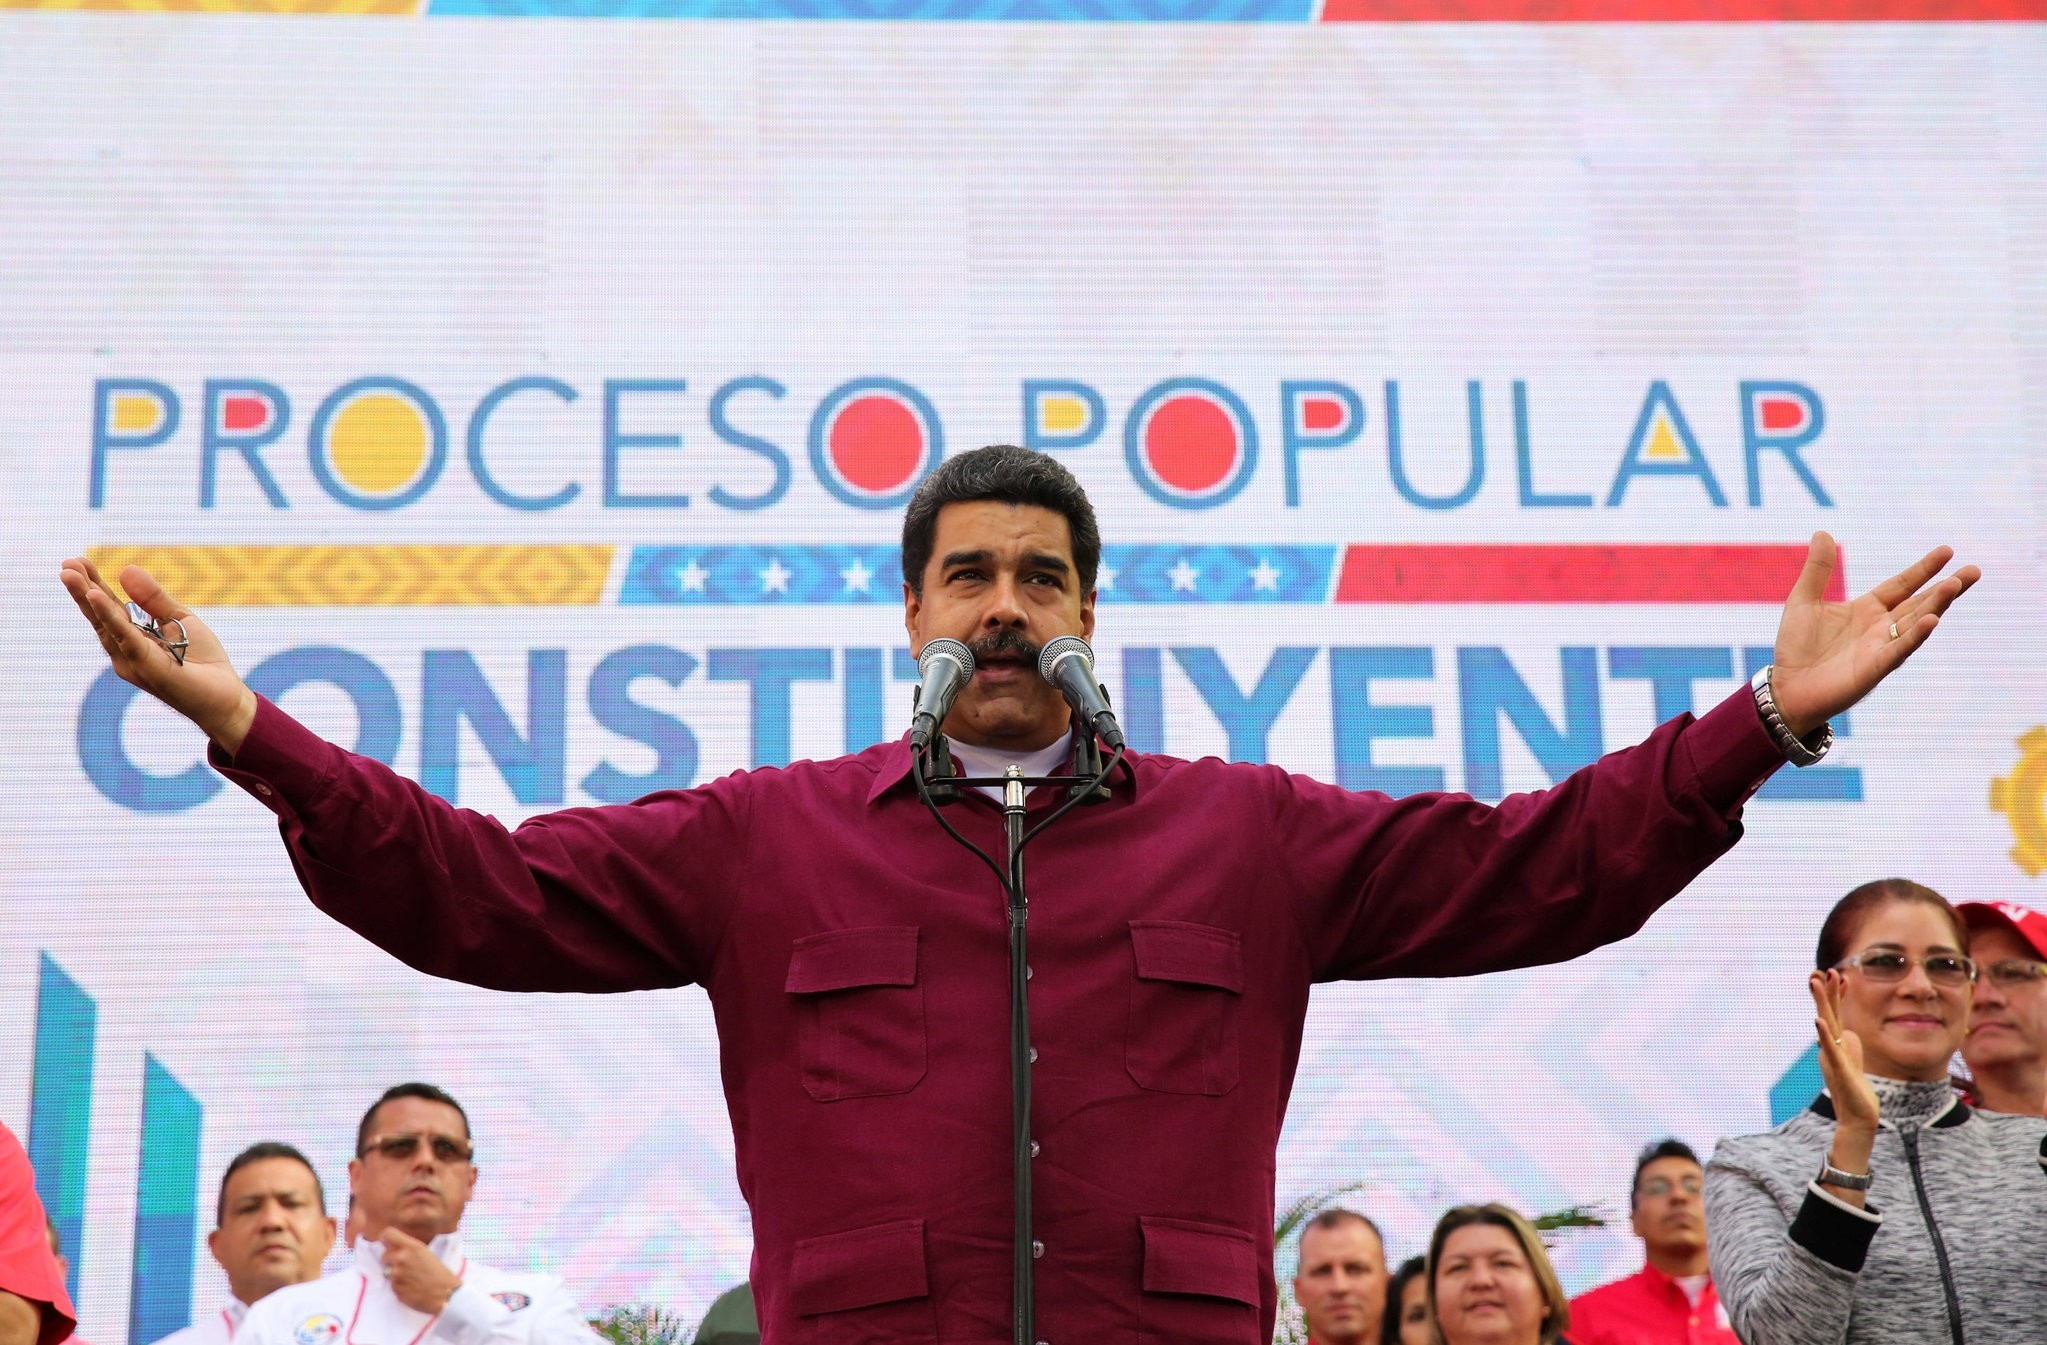 Venezuela's President Nicolas Maduro speaks, during a meeting with supporters at Miraflores Palace in Caracas, Venezuela May 19, 2017. (REUTERS Photo)